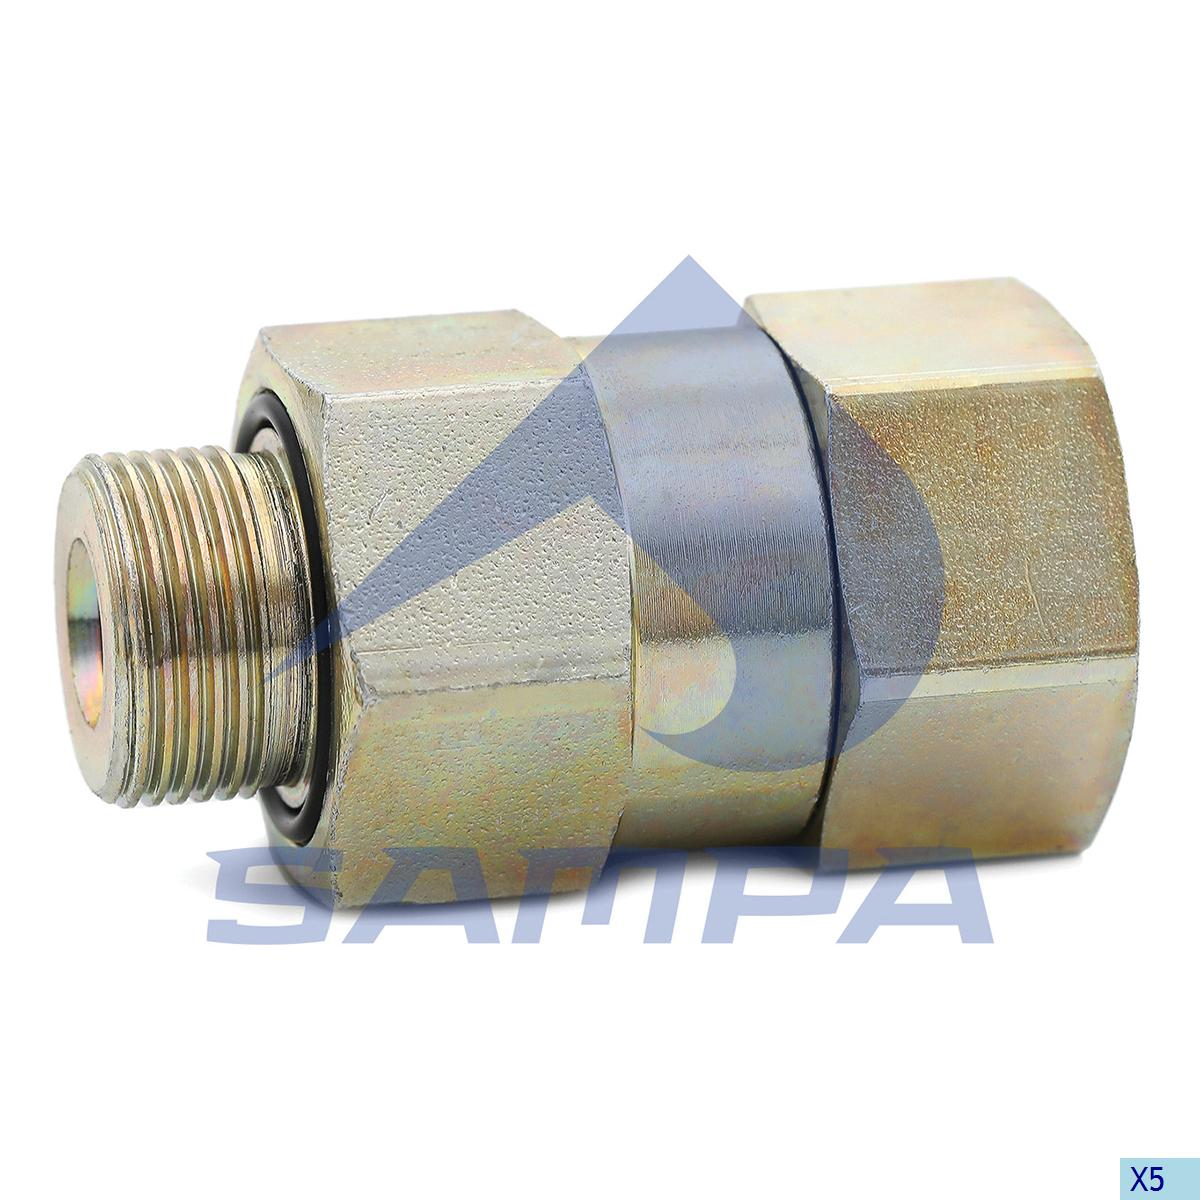 Check Valve, Volvo, Compressed Air System